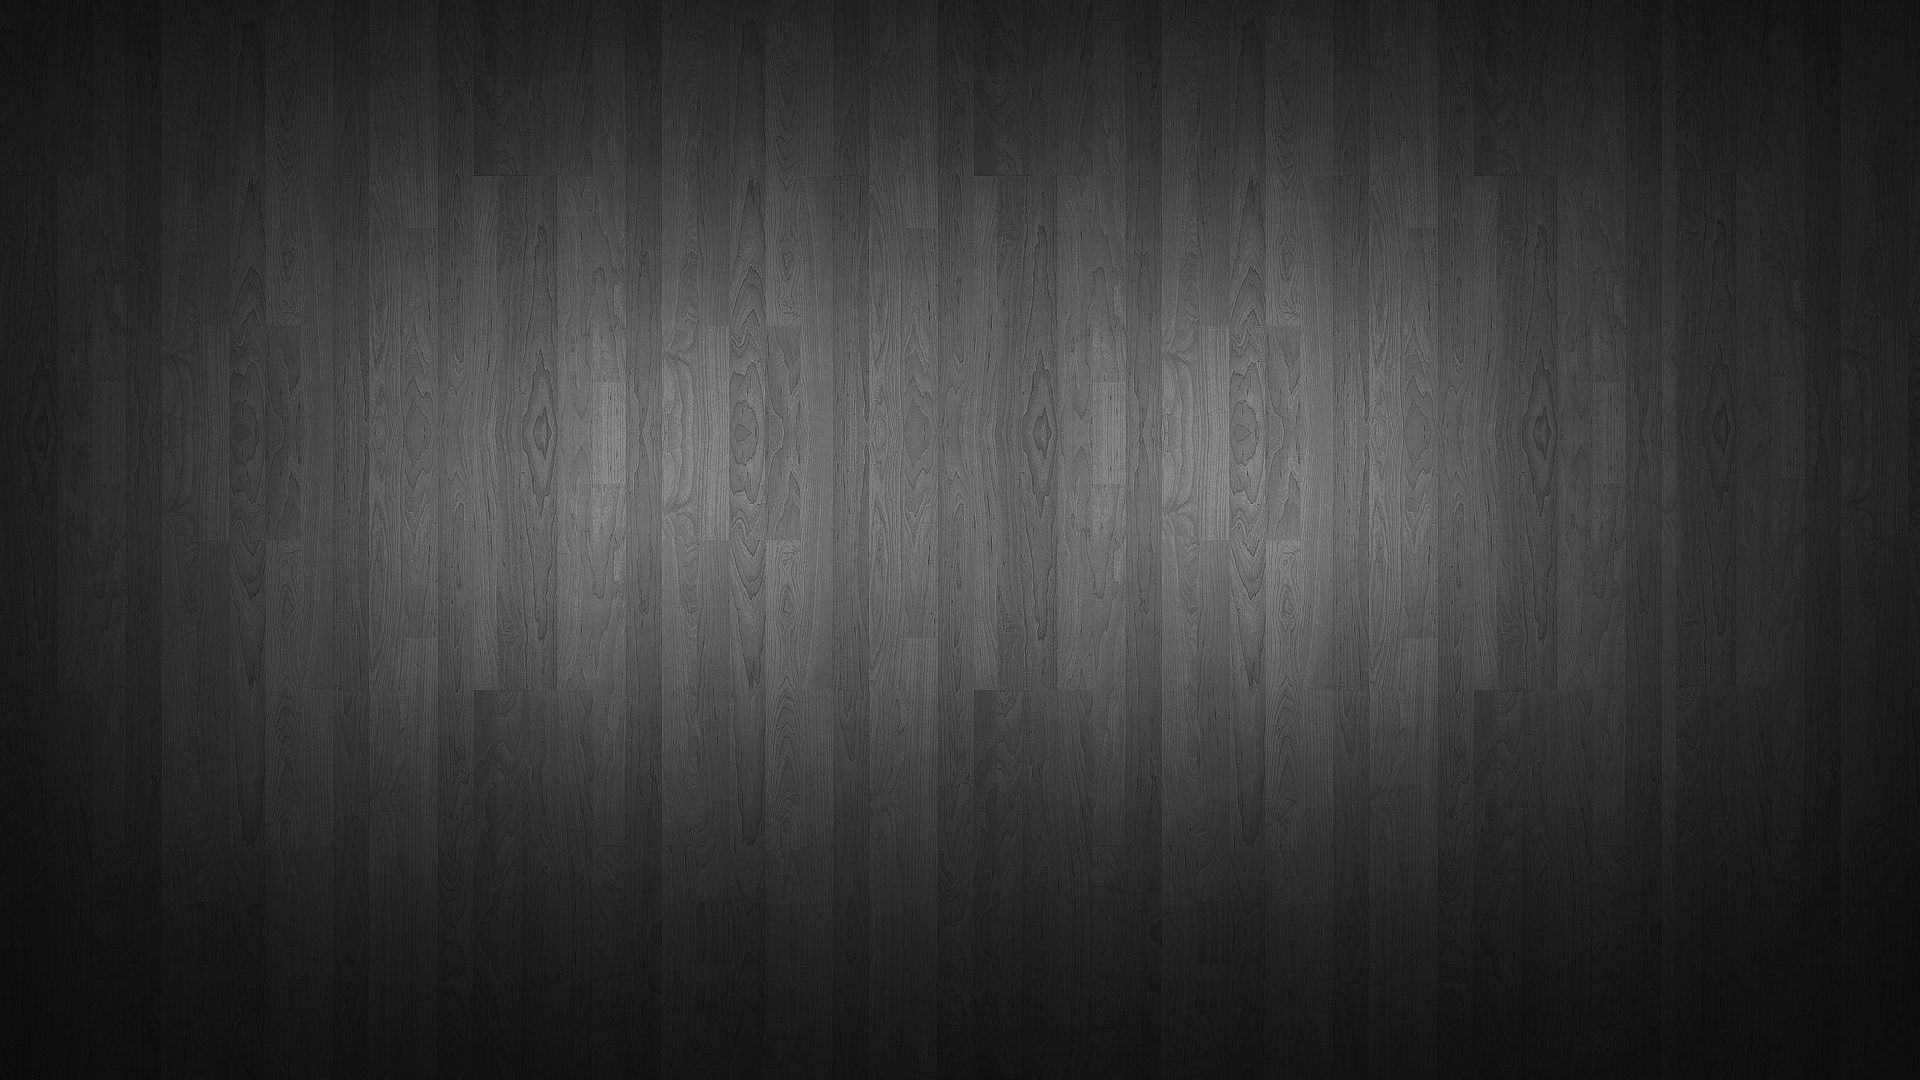 Black Wooden Backgrounds 198.9 Kb